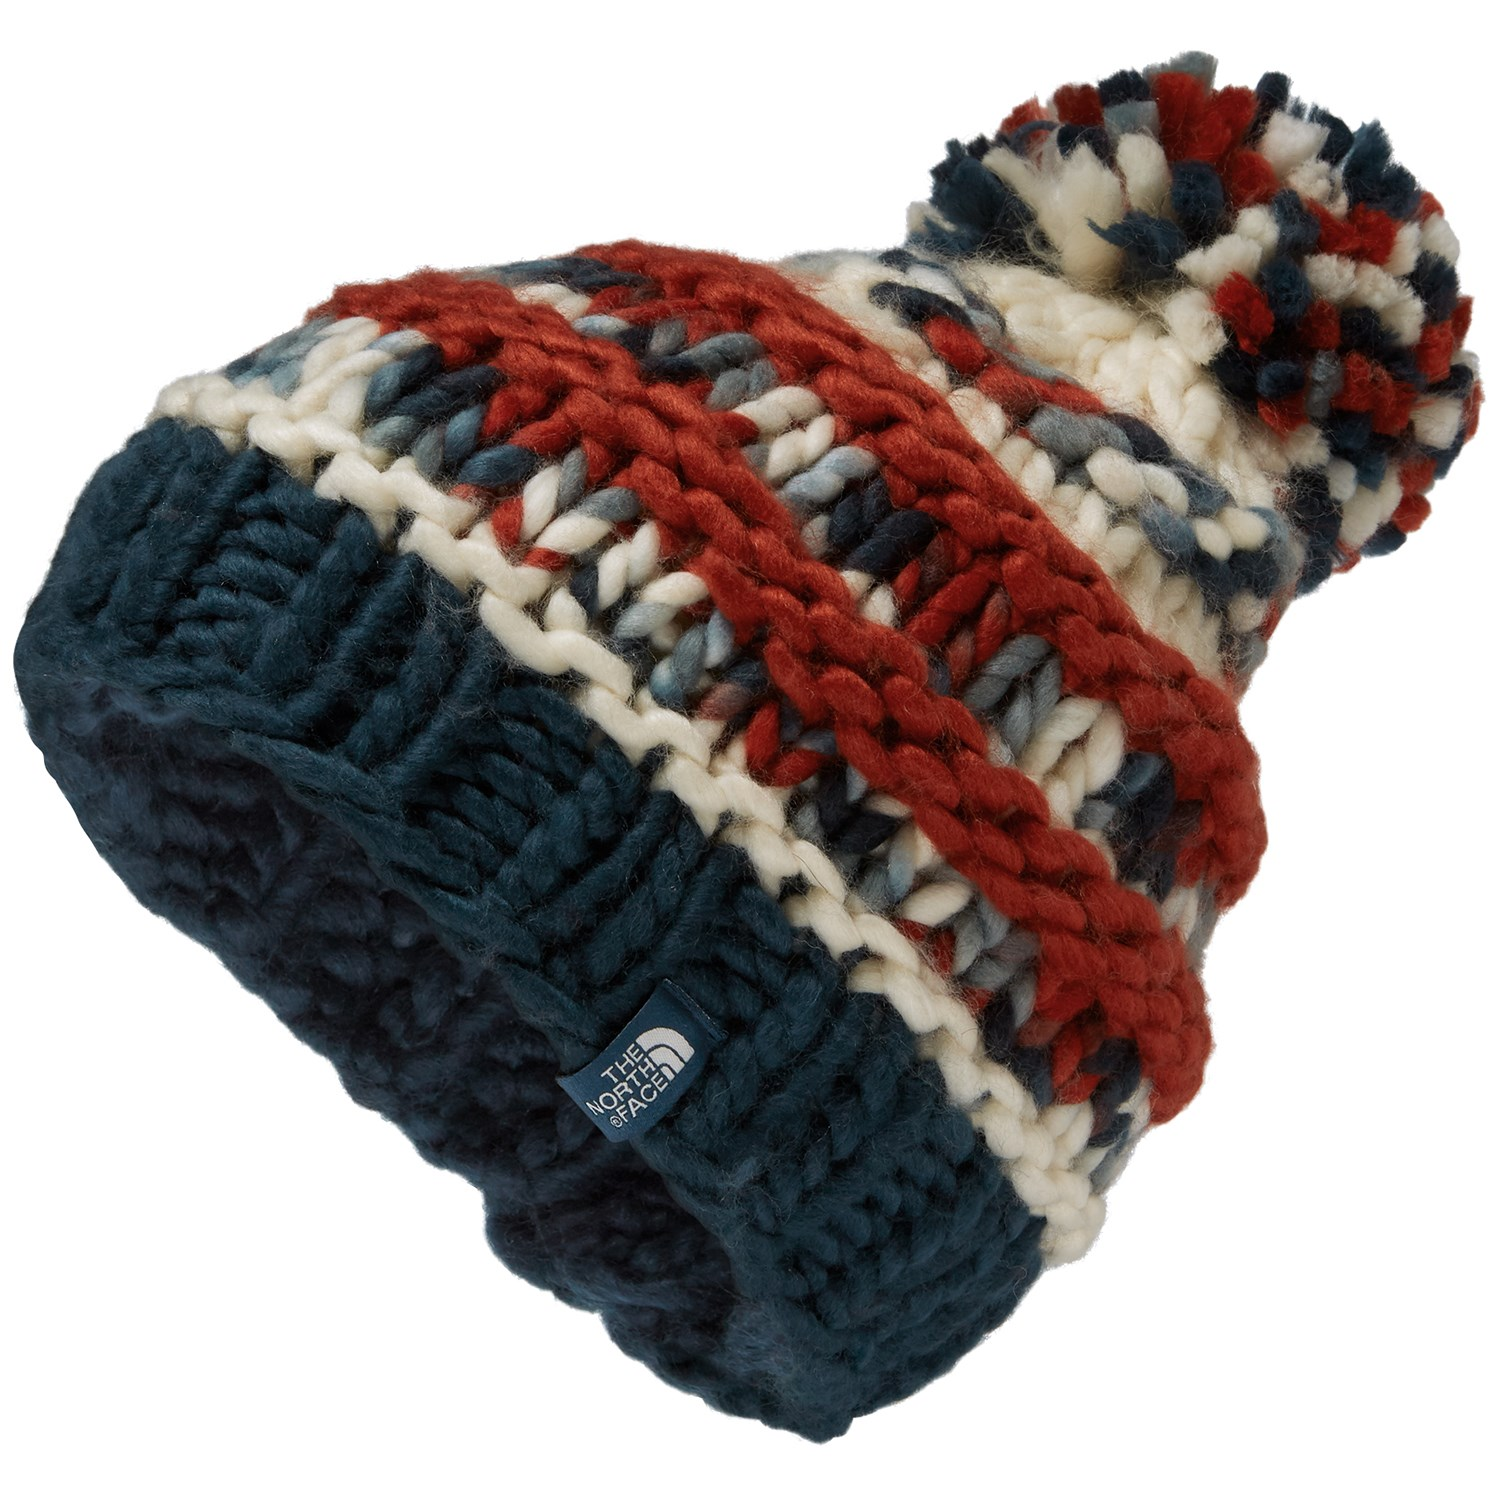 cac06d1d1 The North Face Nanny Knit Beanie - Women's